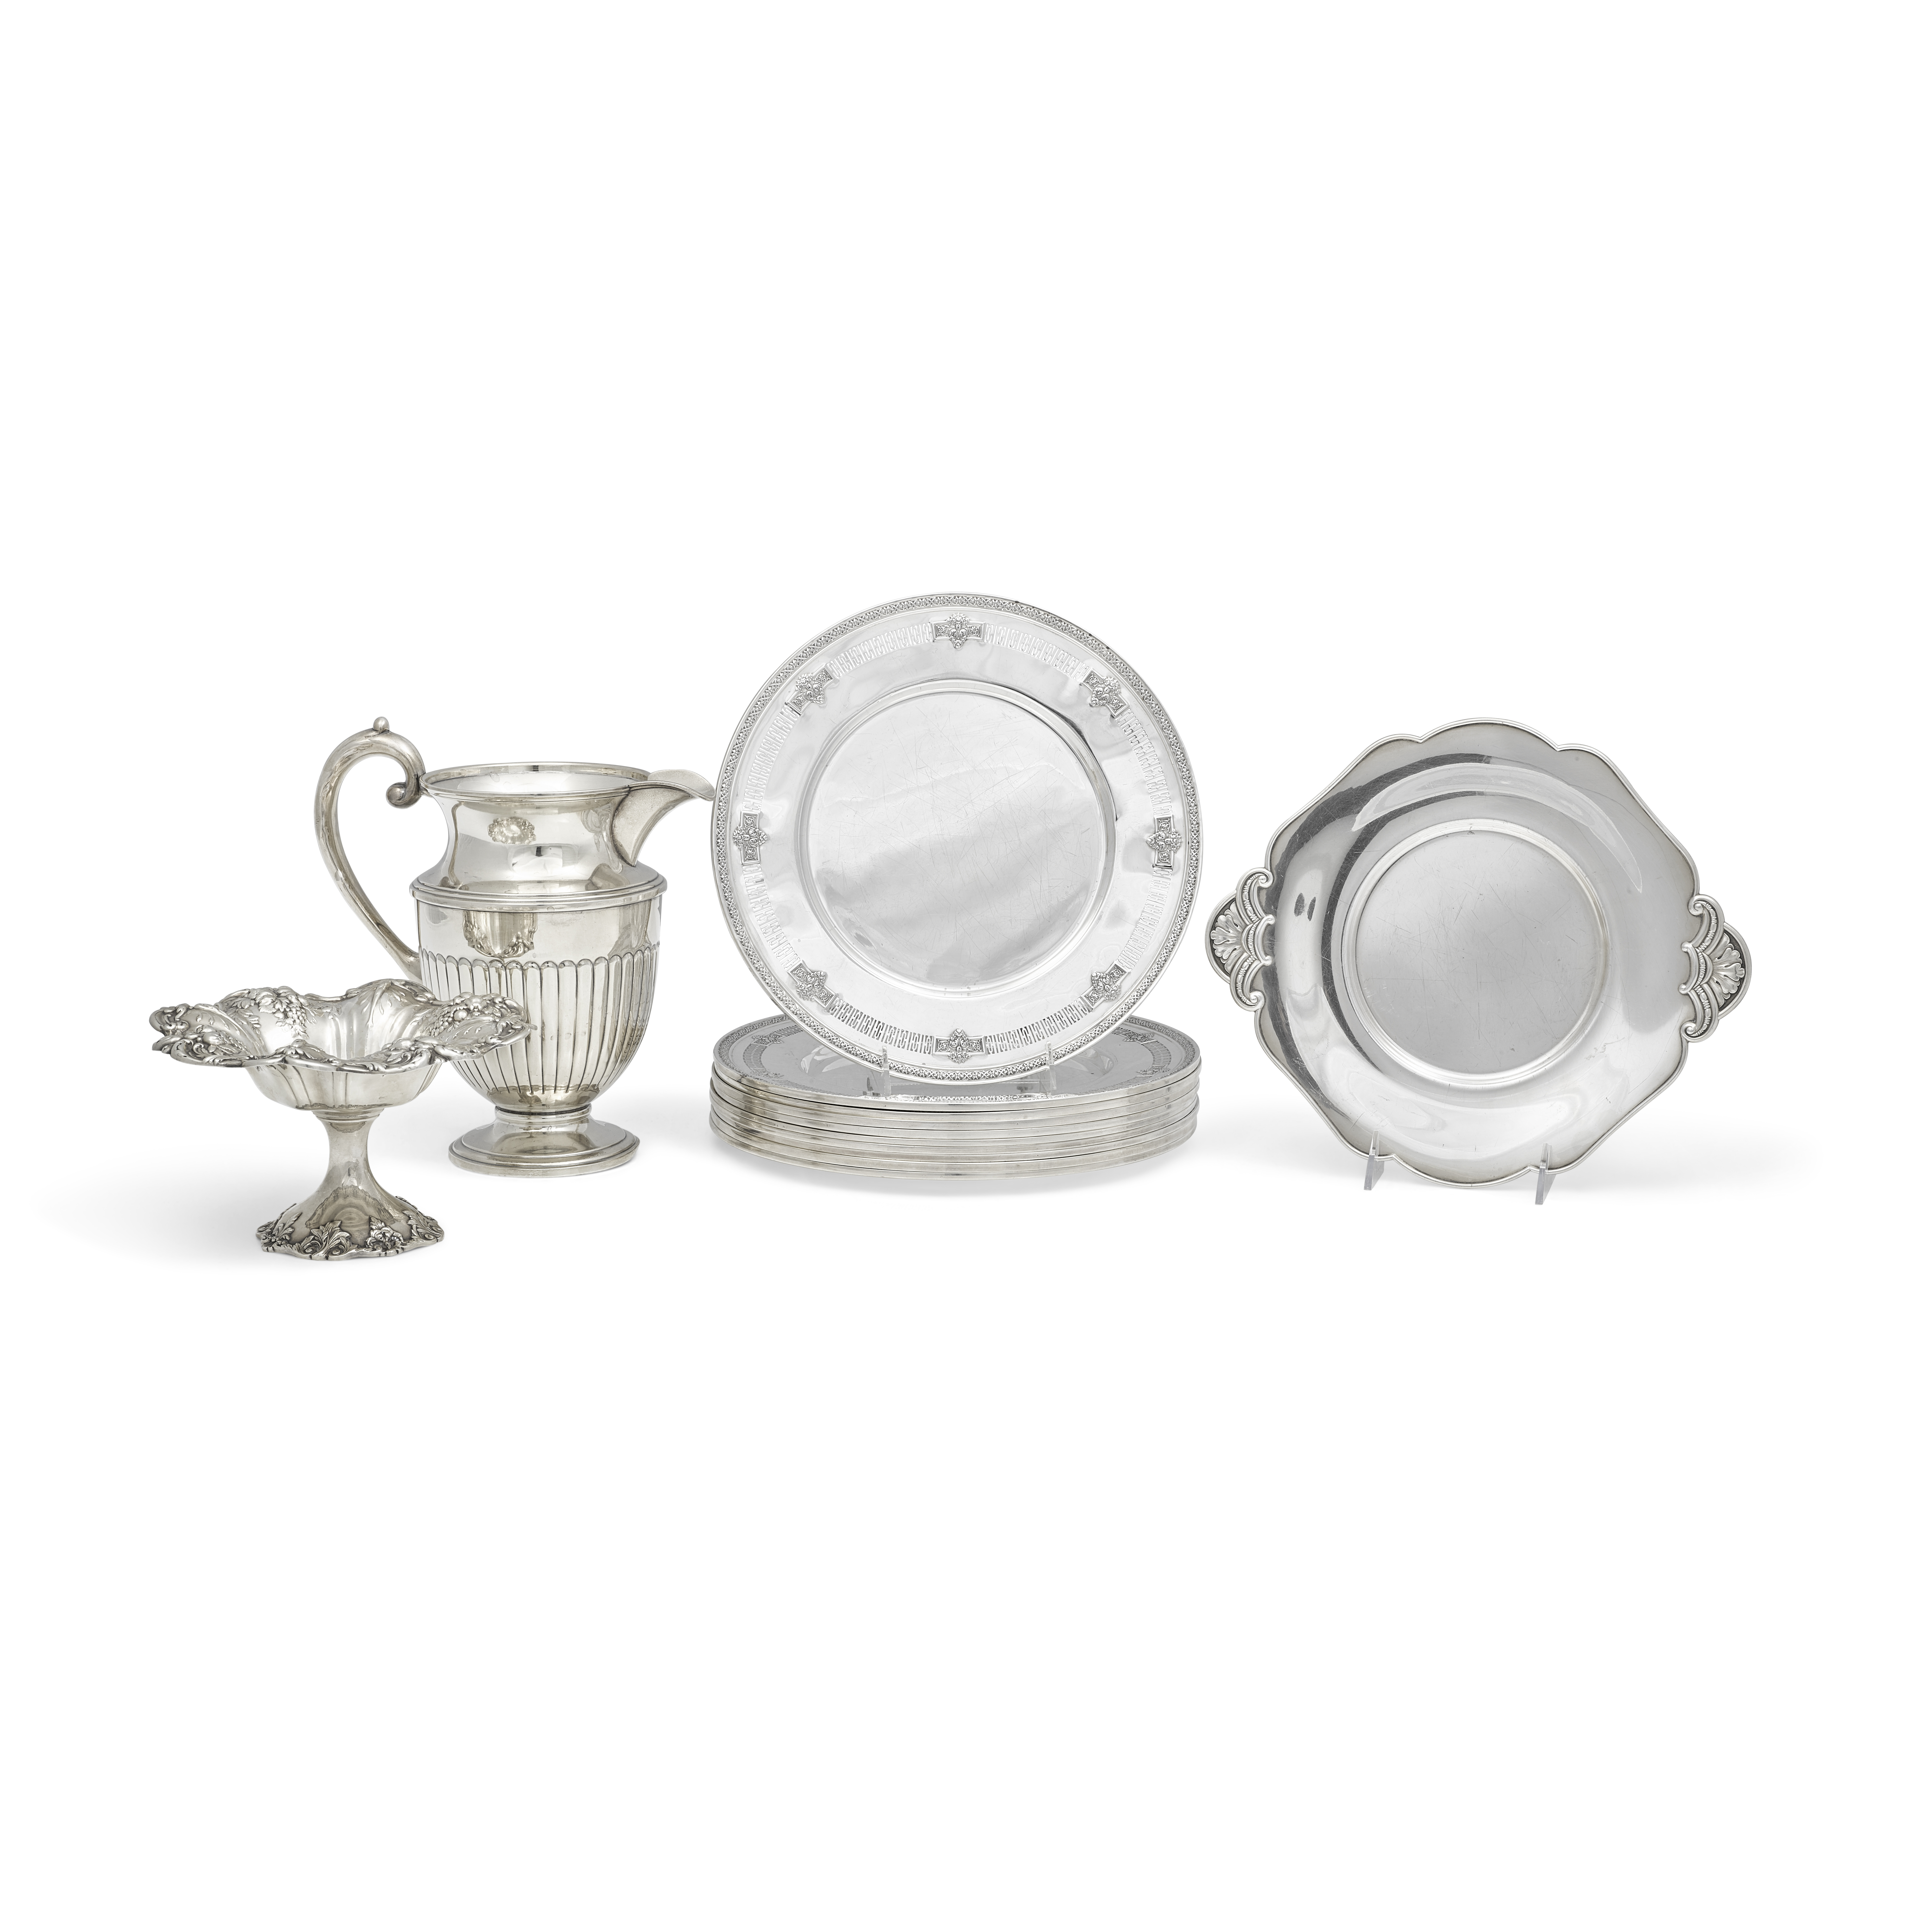 A set of Ten American sterling silver service plates by International Silver Co., 20th century